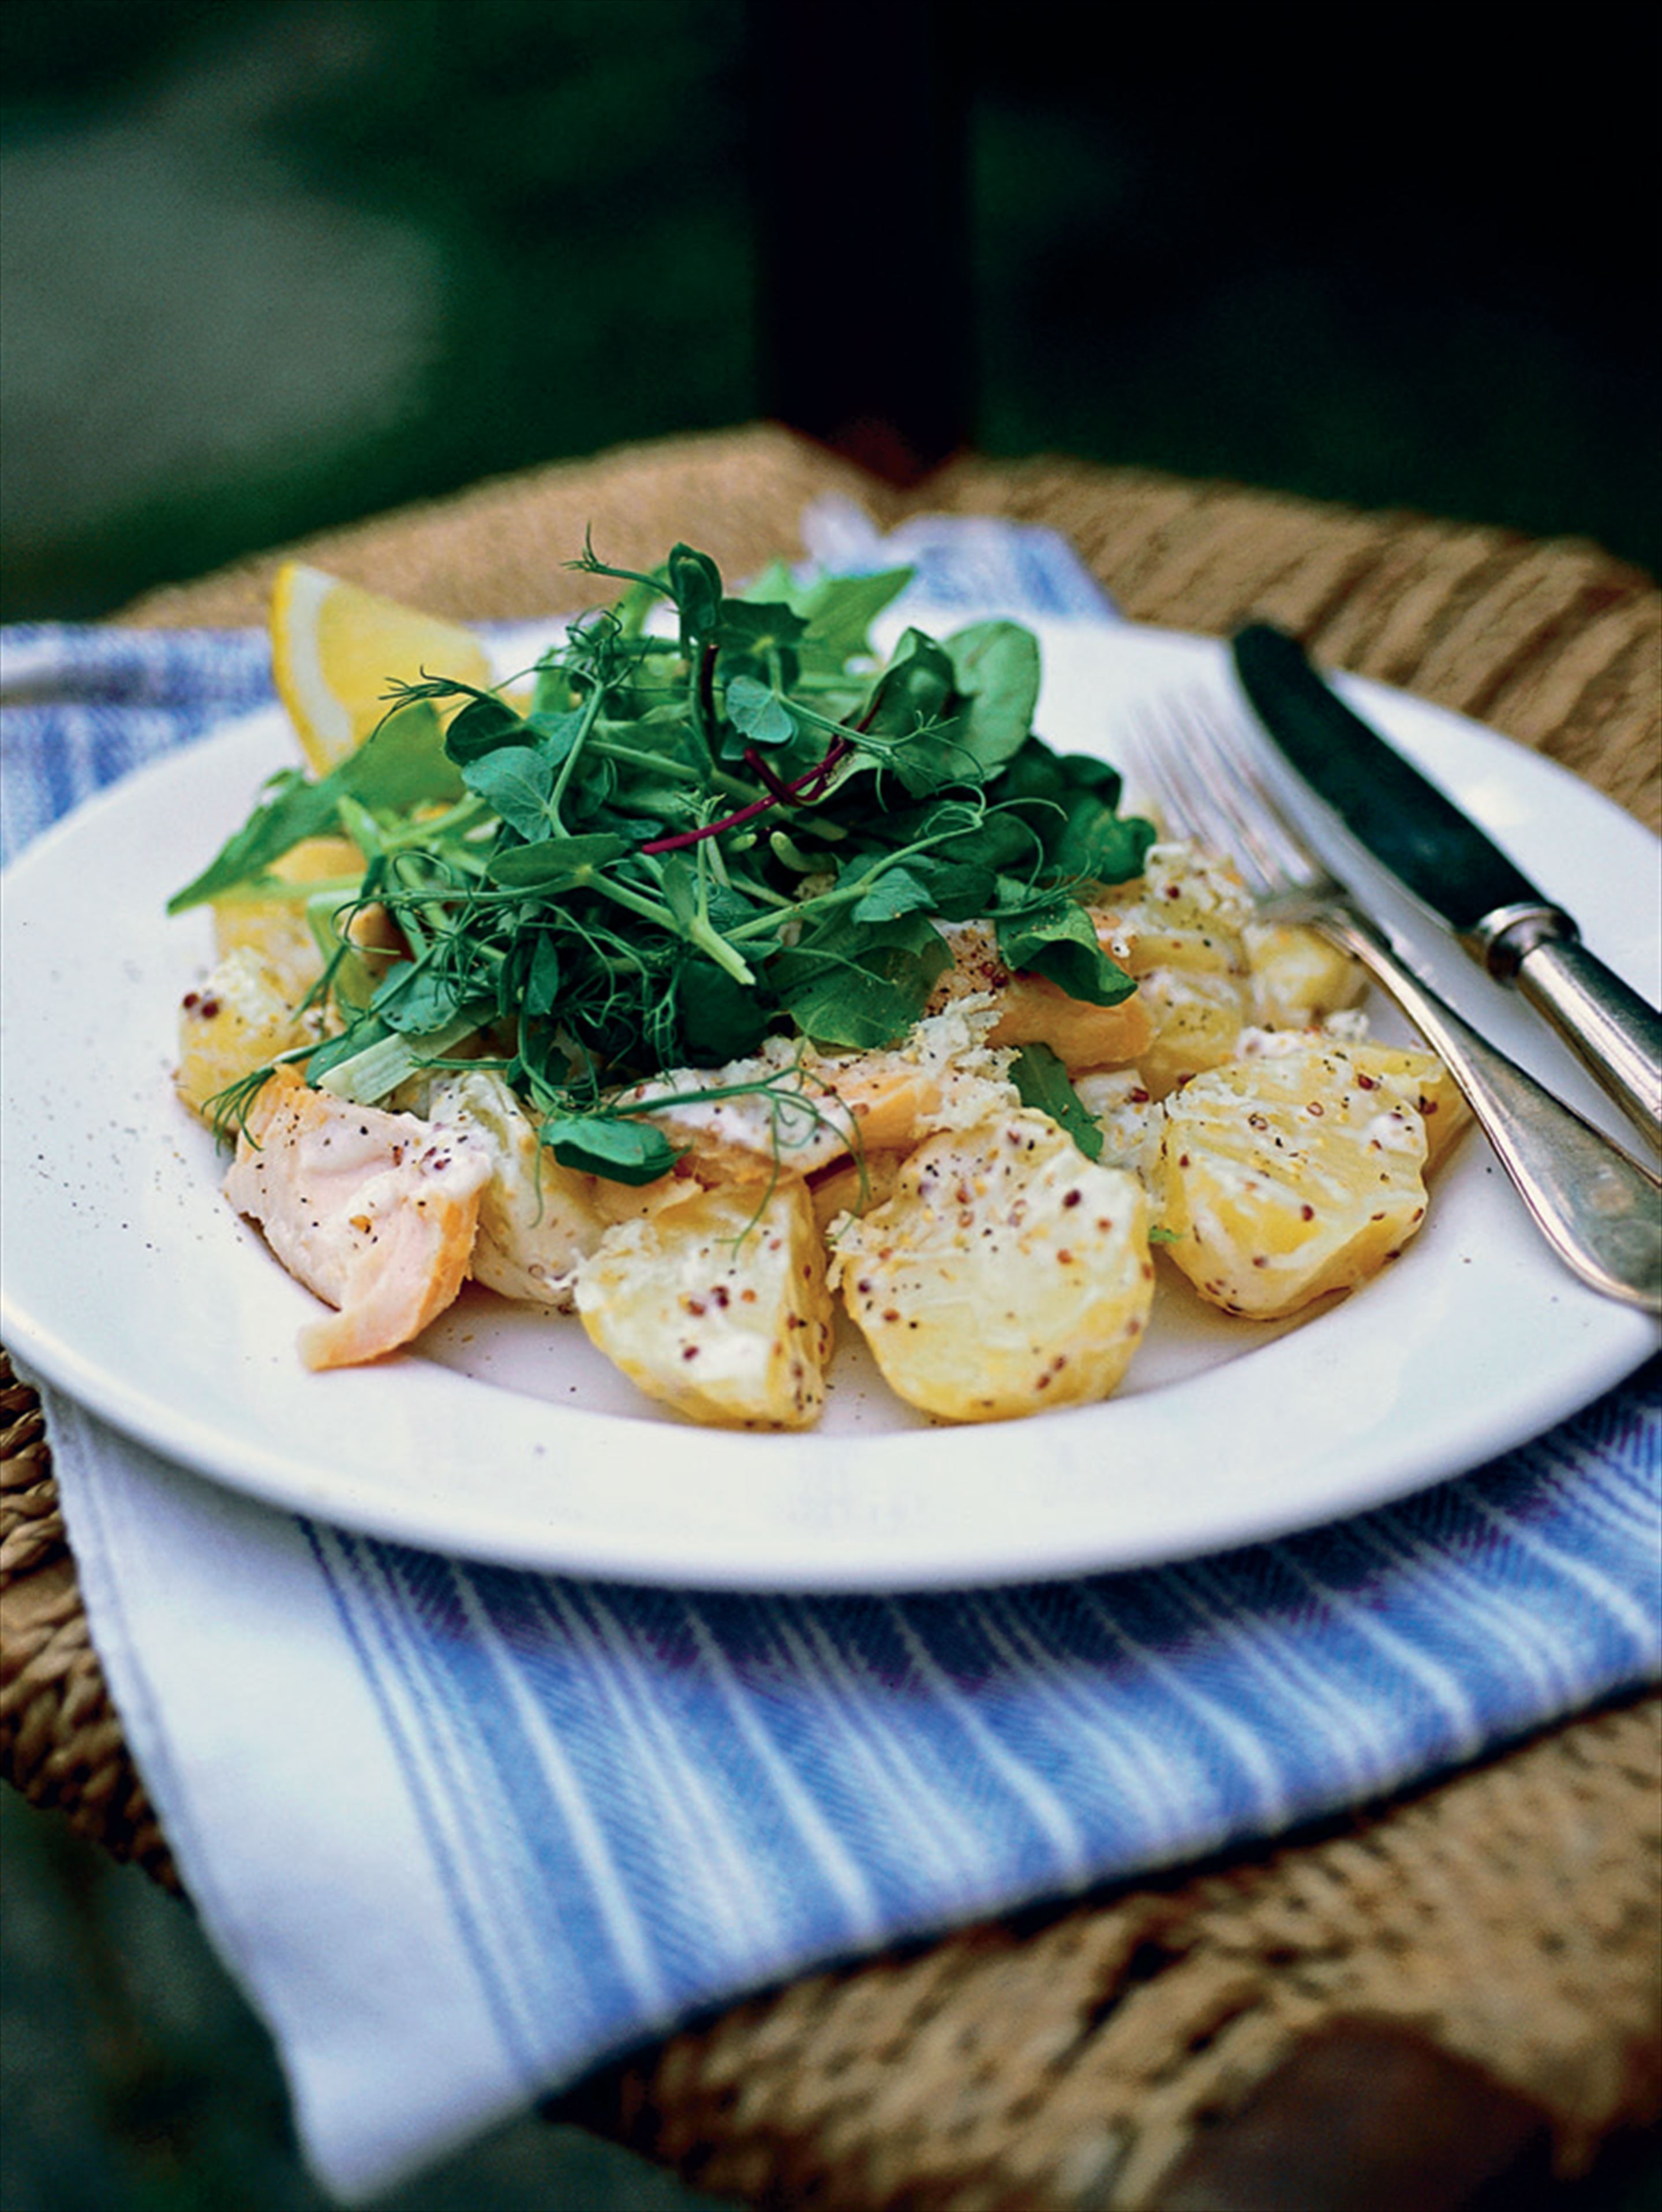 Creamy mustard potato salad with smoked trout